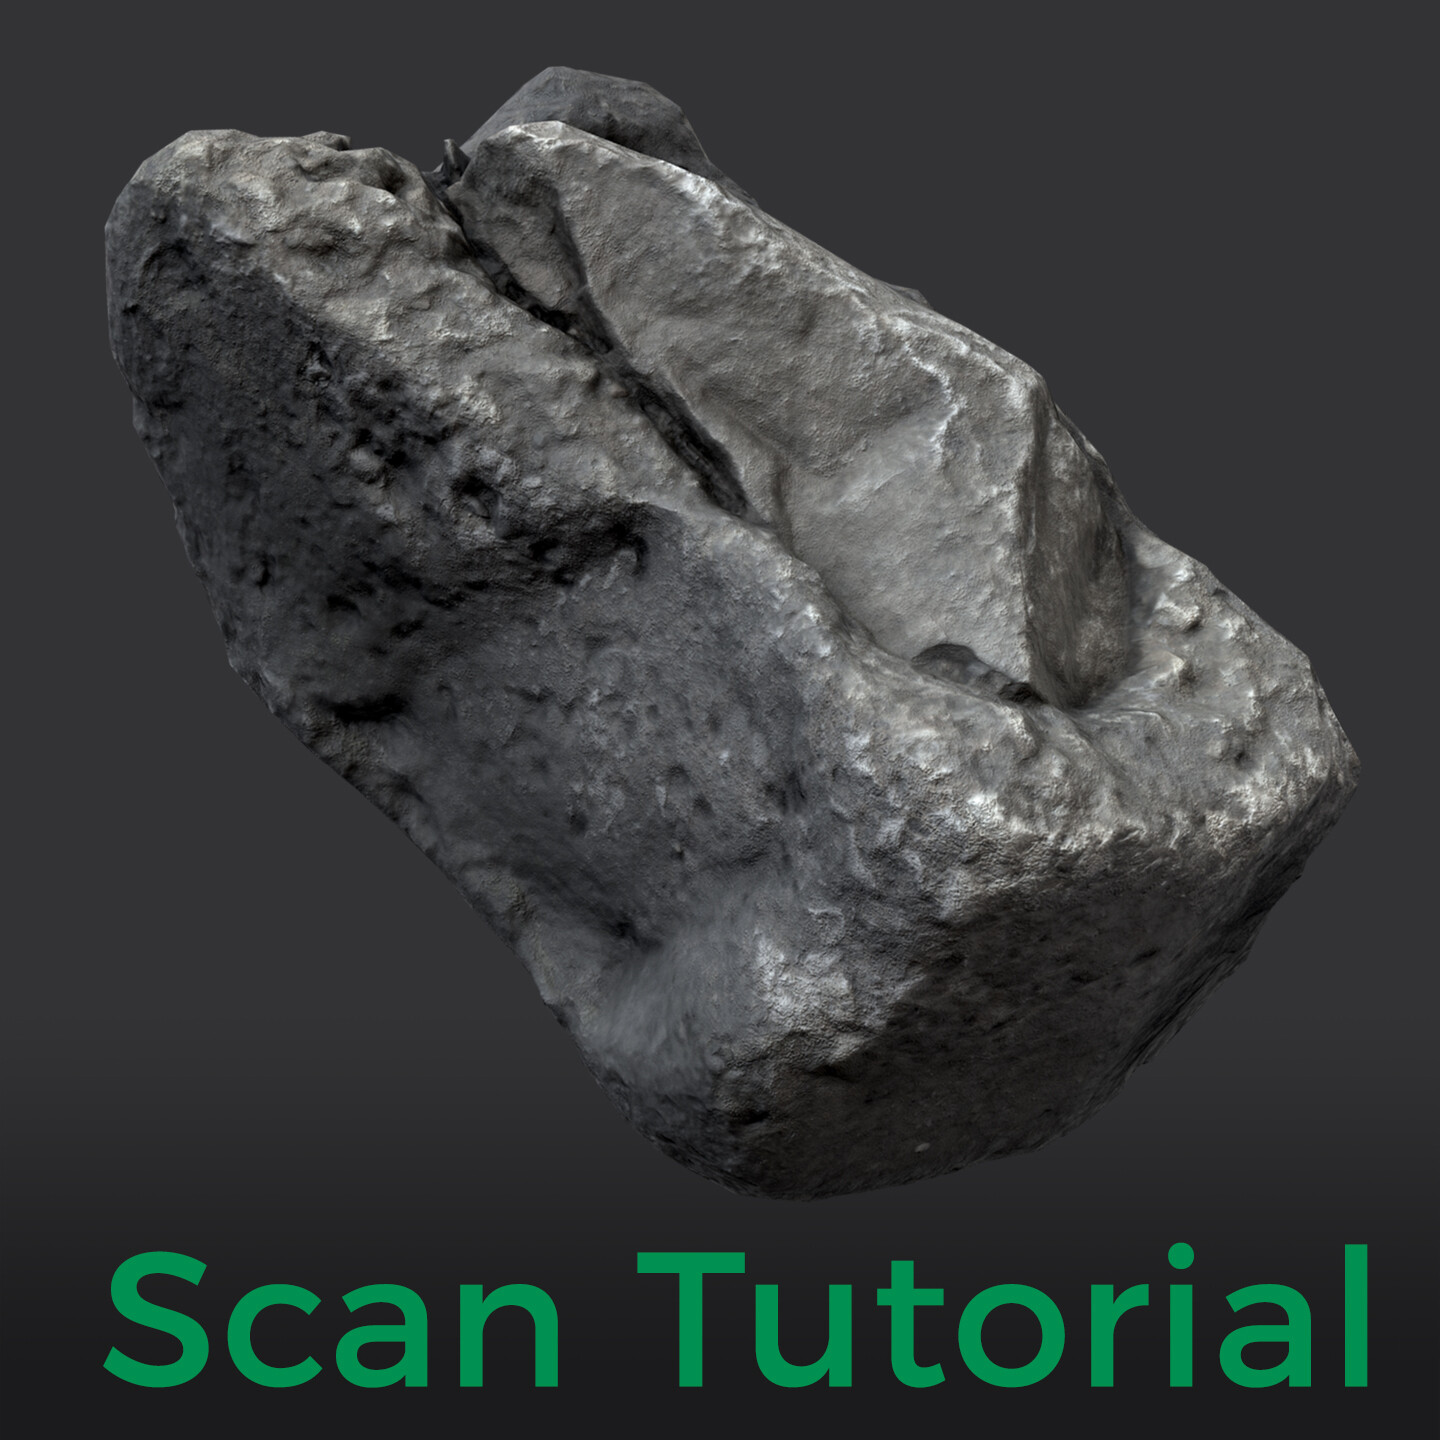 Rock Scan Tutorial - Scanning for games